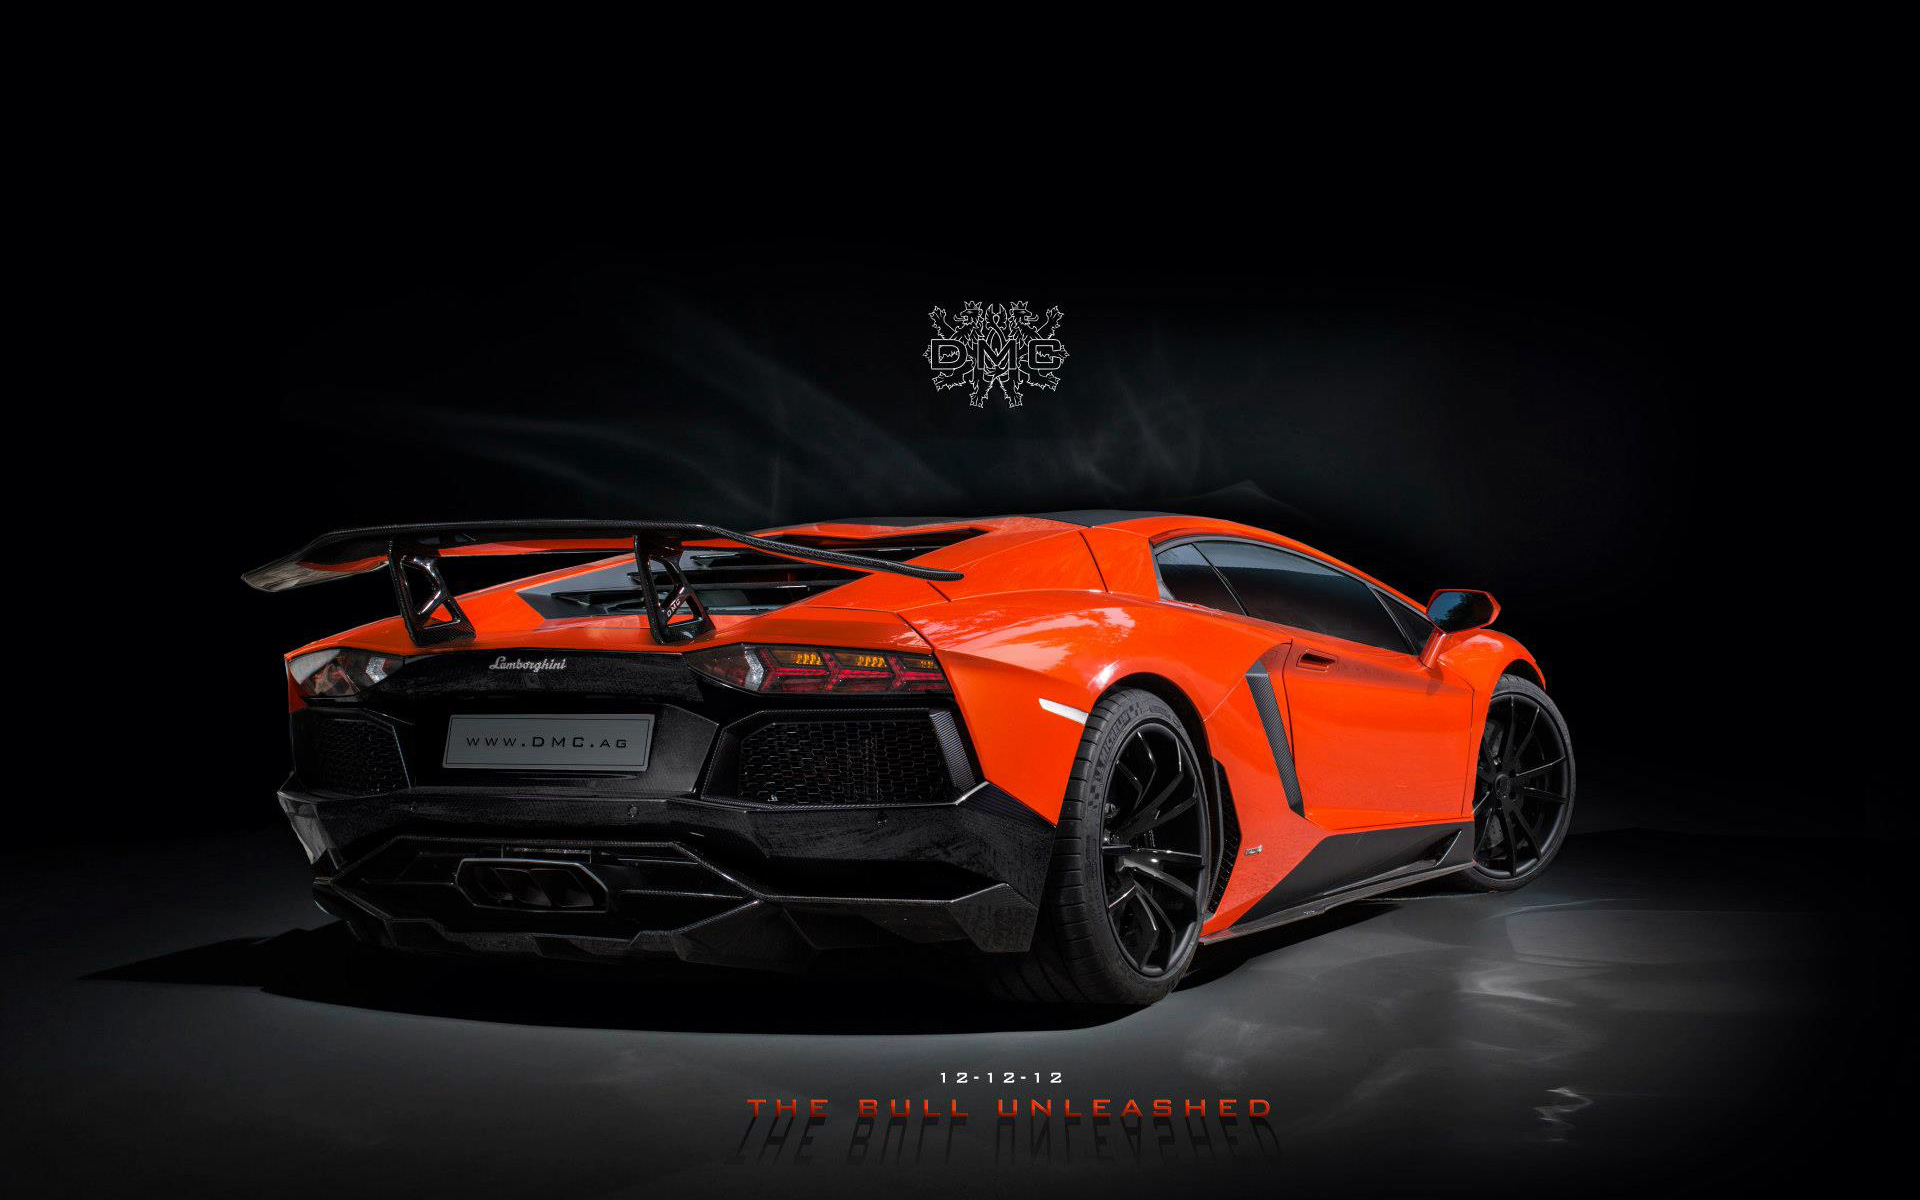 2013 Lamborghini Aventador LP900 SV 2 Wallpaper HD Car Wallpapers 1920x1200